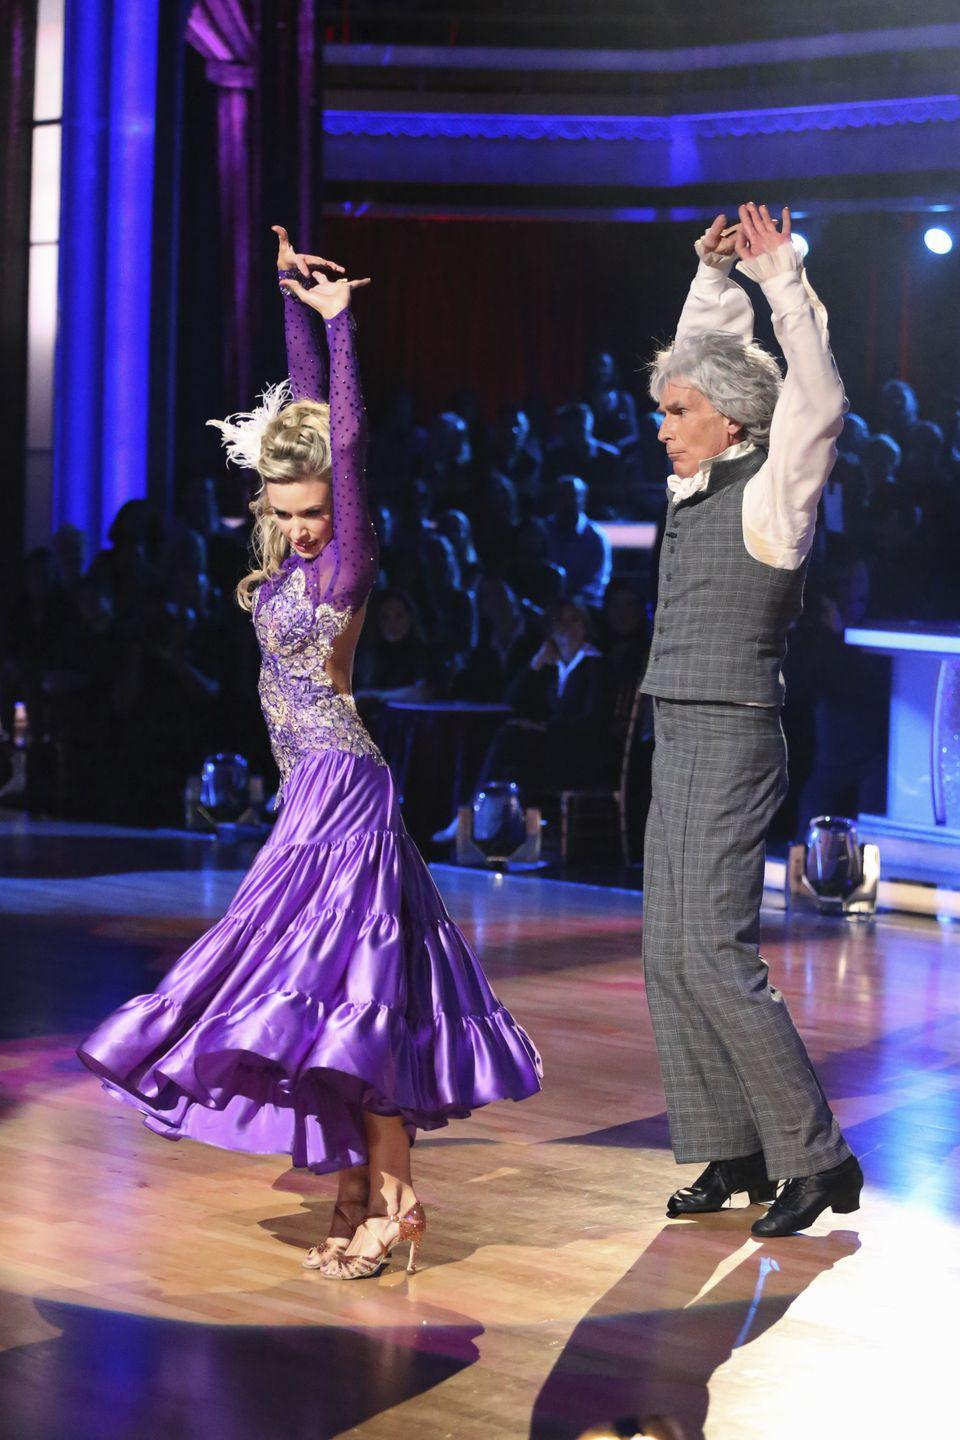 <p>When it was revealed that Bill Nye the Science Guy (that's his full name, and don't you forget it!) would be on season 17, everyone braced themselves for awkwardness. And as it turns out, good ole Bill didn't disappoint with a few great routines before he was eliminated in the second week. </p>